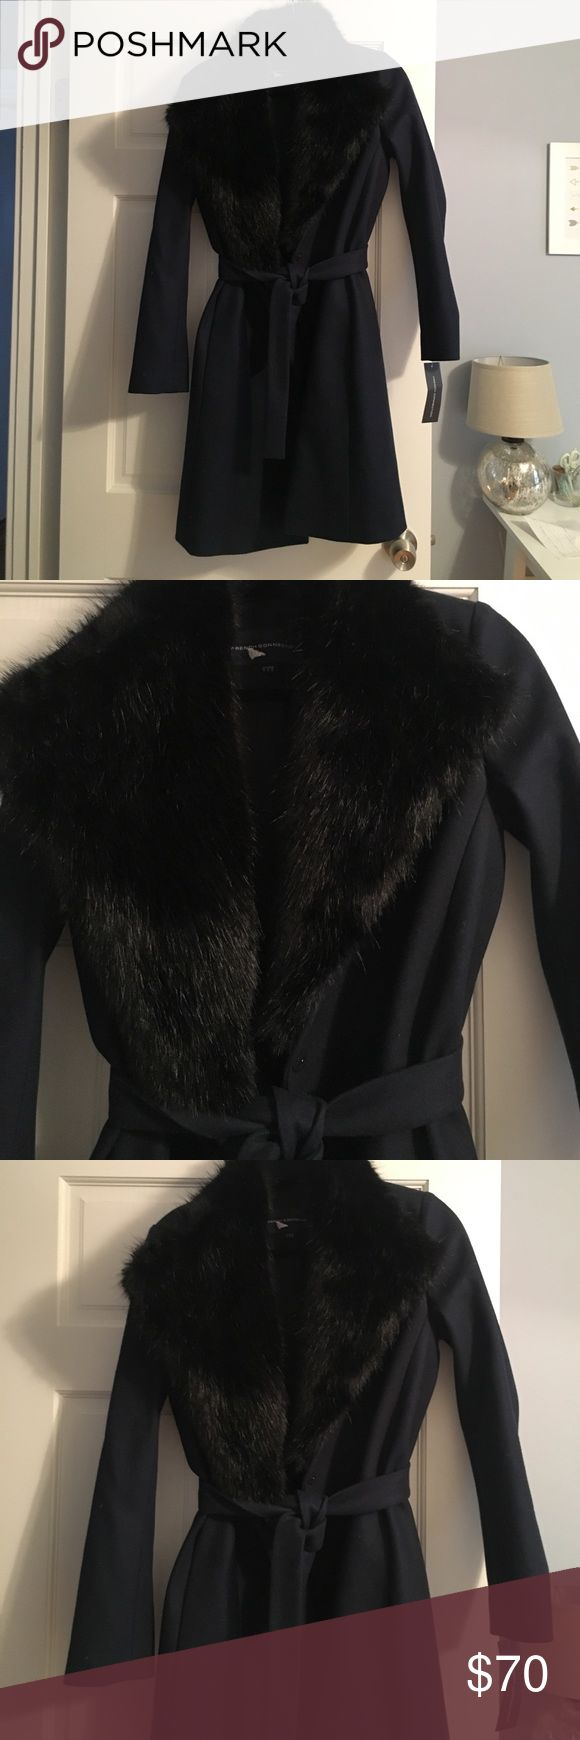 French Connection Navy Coat black faux fur collar French Connection Navy Coat black faux fur collar size 6 perfect condition. Never worn French Connection Jackets & Coats